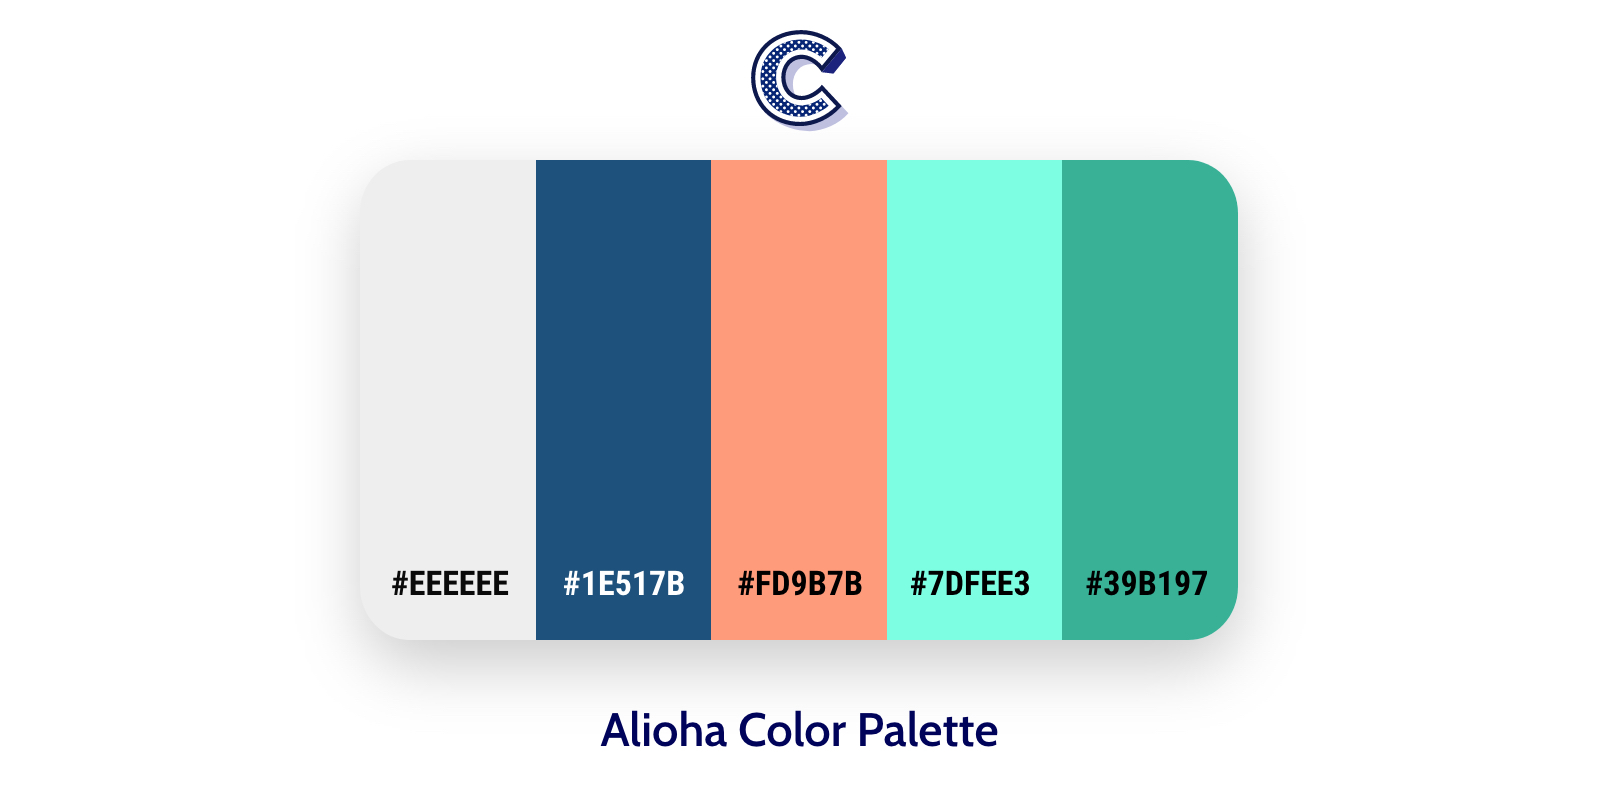 the featured image of alioha color palette